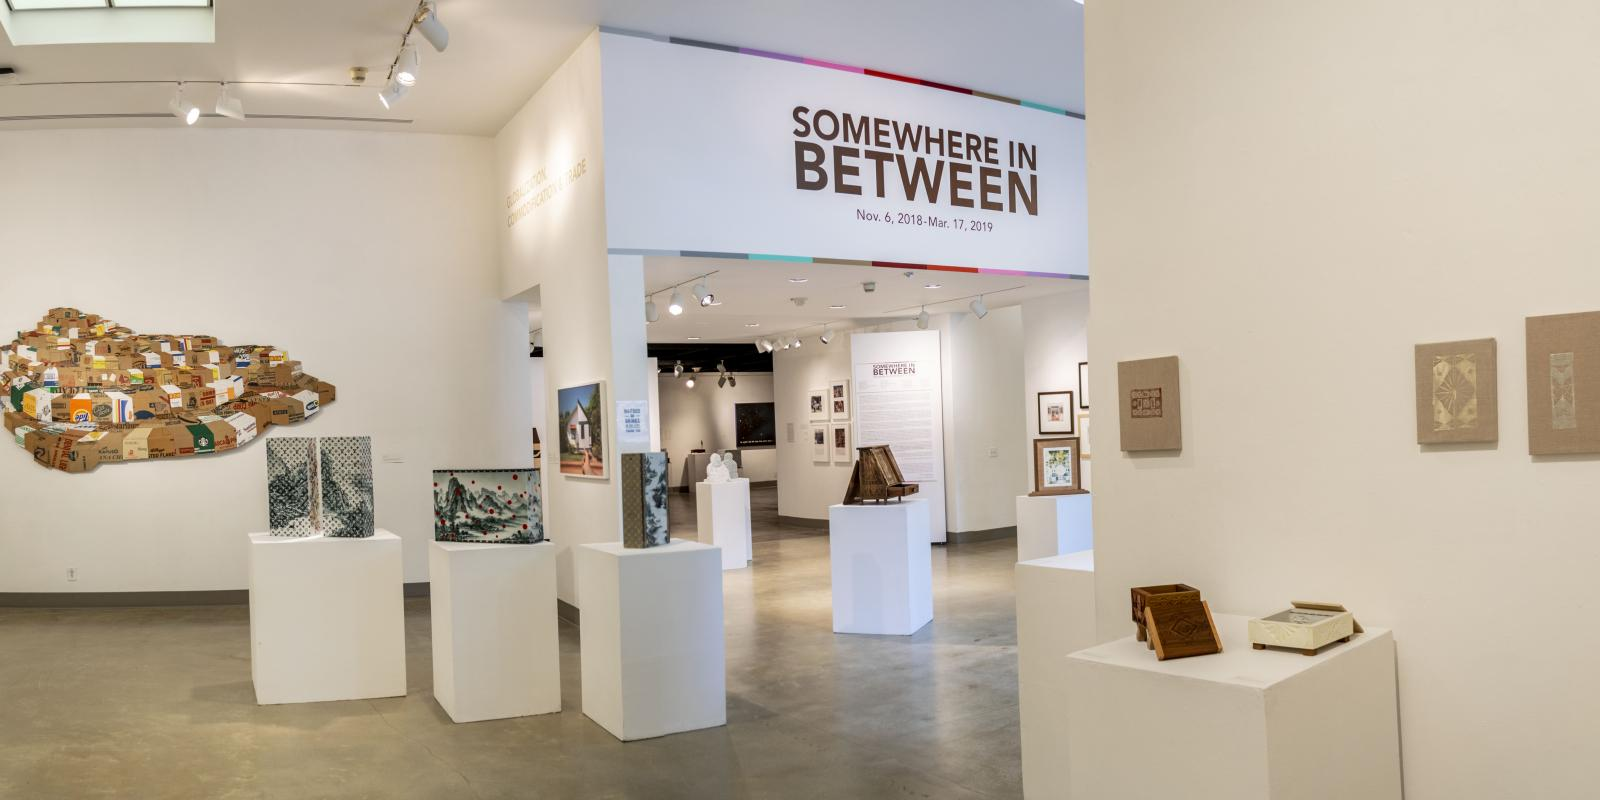 Front eastside view of the gallery, Exhibition: Somewhere In Between, Nov 6, 2018 - Mar 17, 2019,  Co-curated by Michele Cairella Fillmore & Bia Gayotto, W. Keith & Janet Kellogg Art Gallery, Cal Poly Pomona.